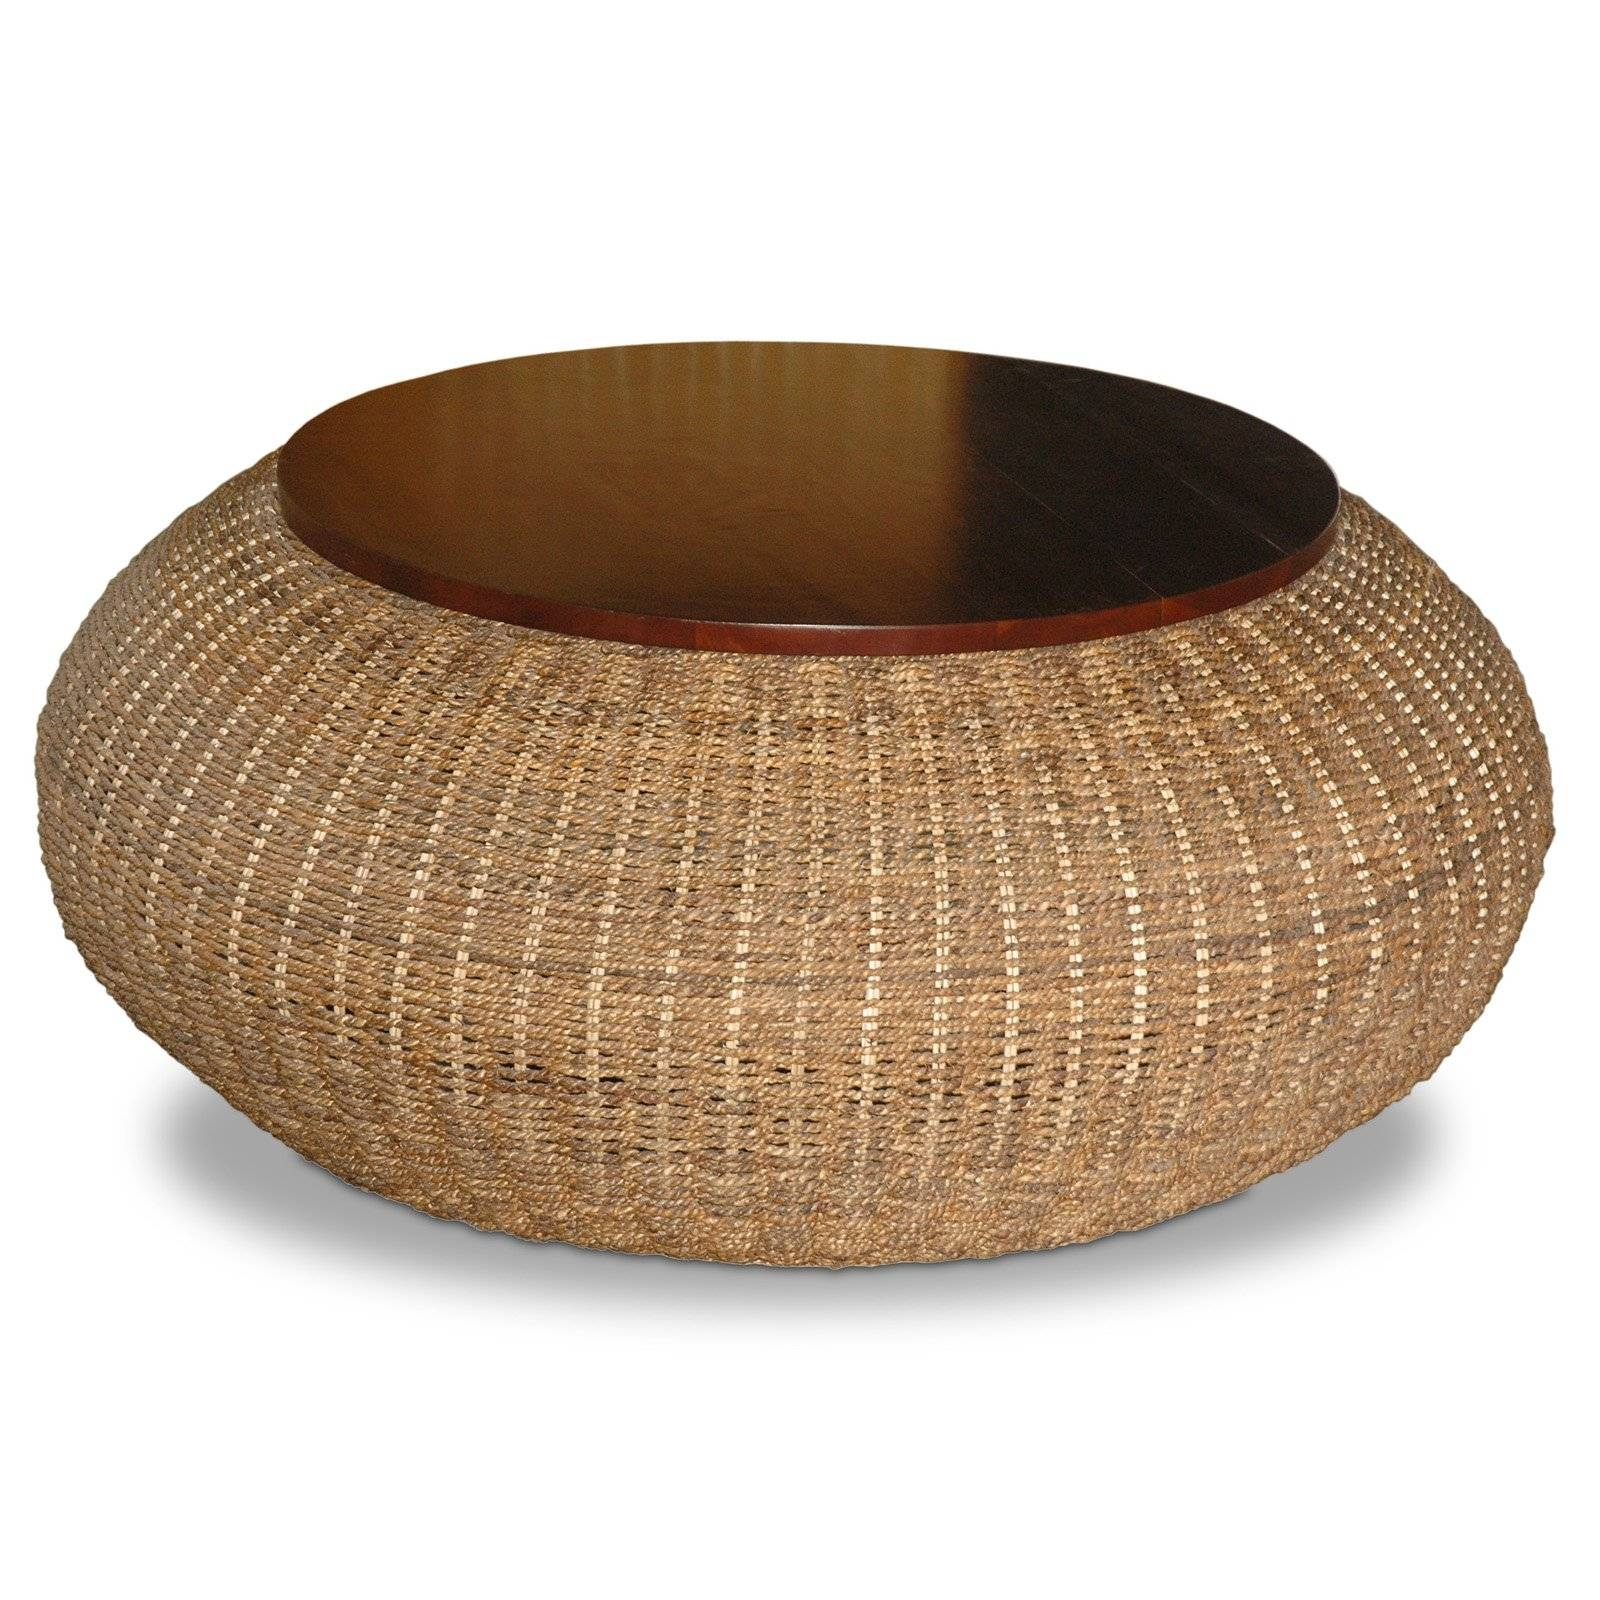 Brown Rattan Round Coffee Table With Storage In An Antique Design In Round Coffee Tables With Storages (Photo 22 of 30)